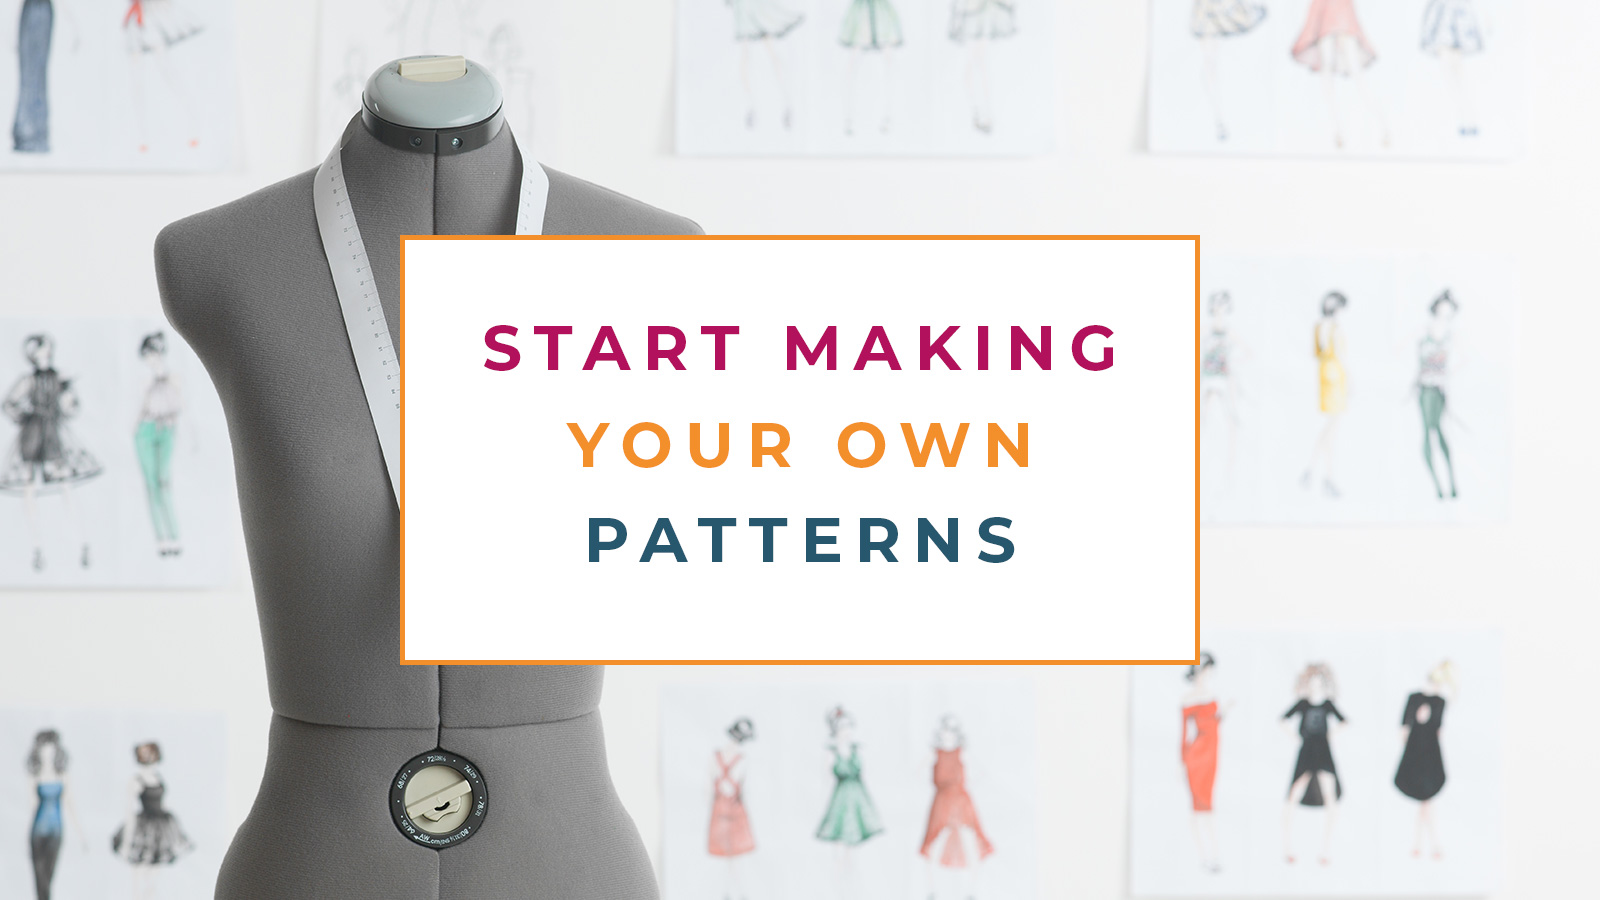 Pattern Making How To Start Making Your Own Patterns The Creative Curator